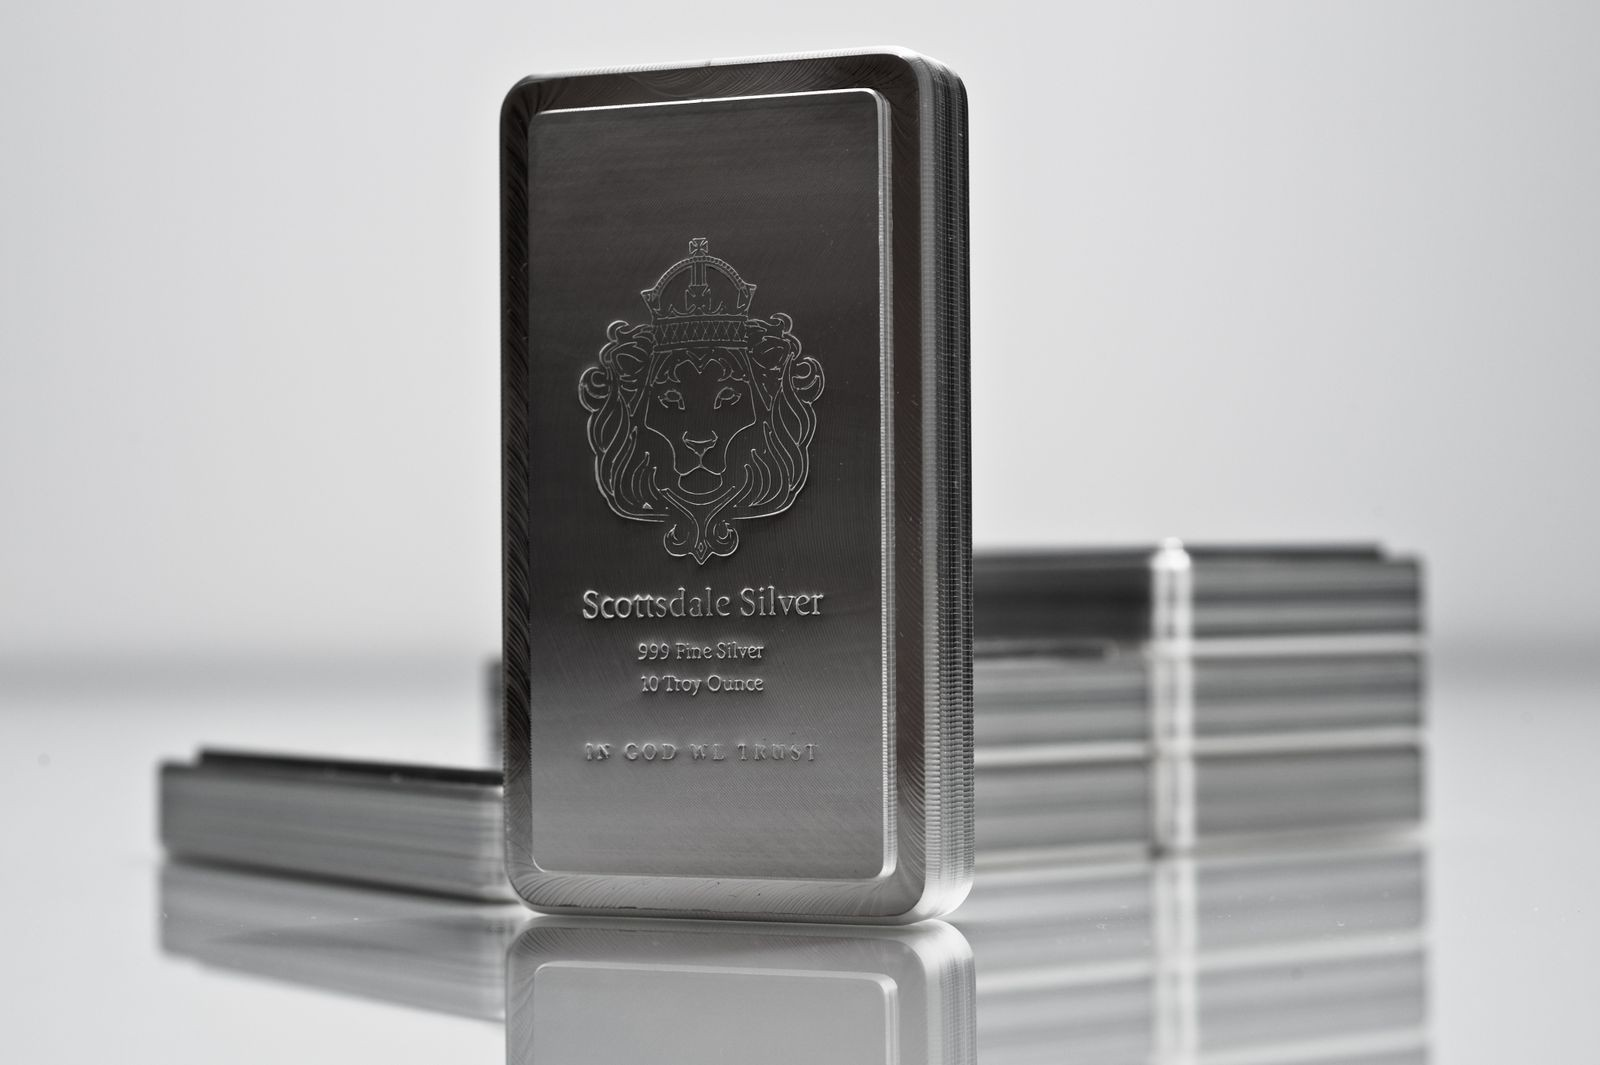 10oz Scottsdale Stacker Silver Bar